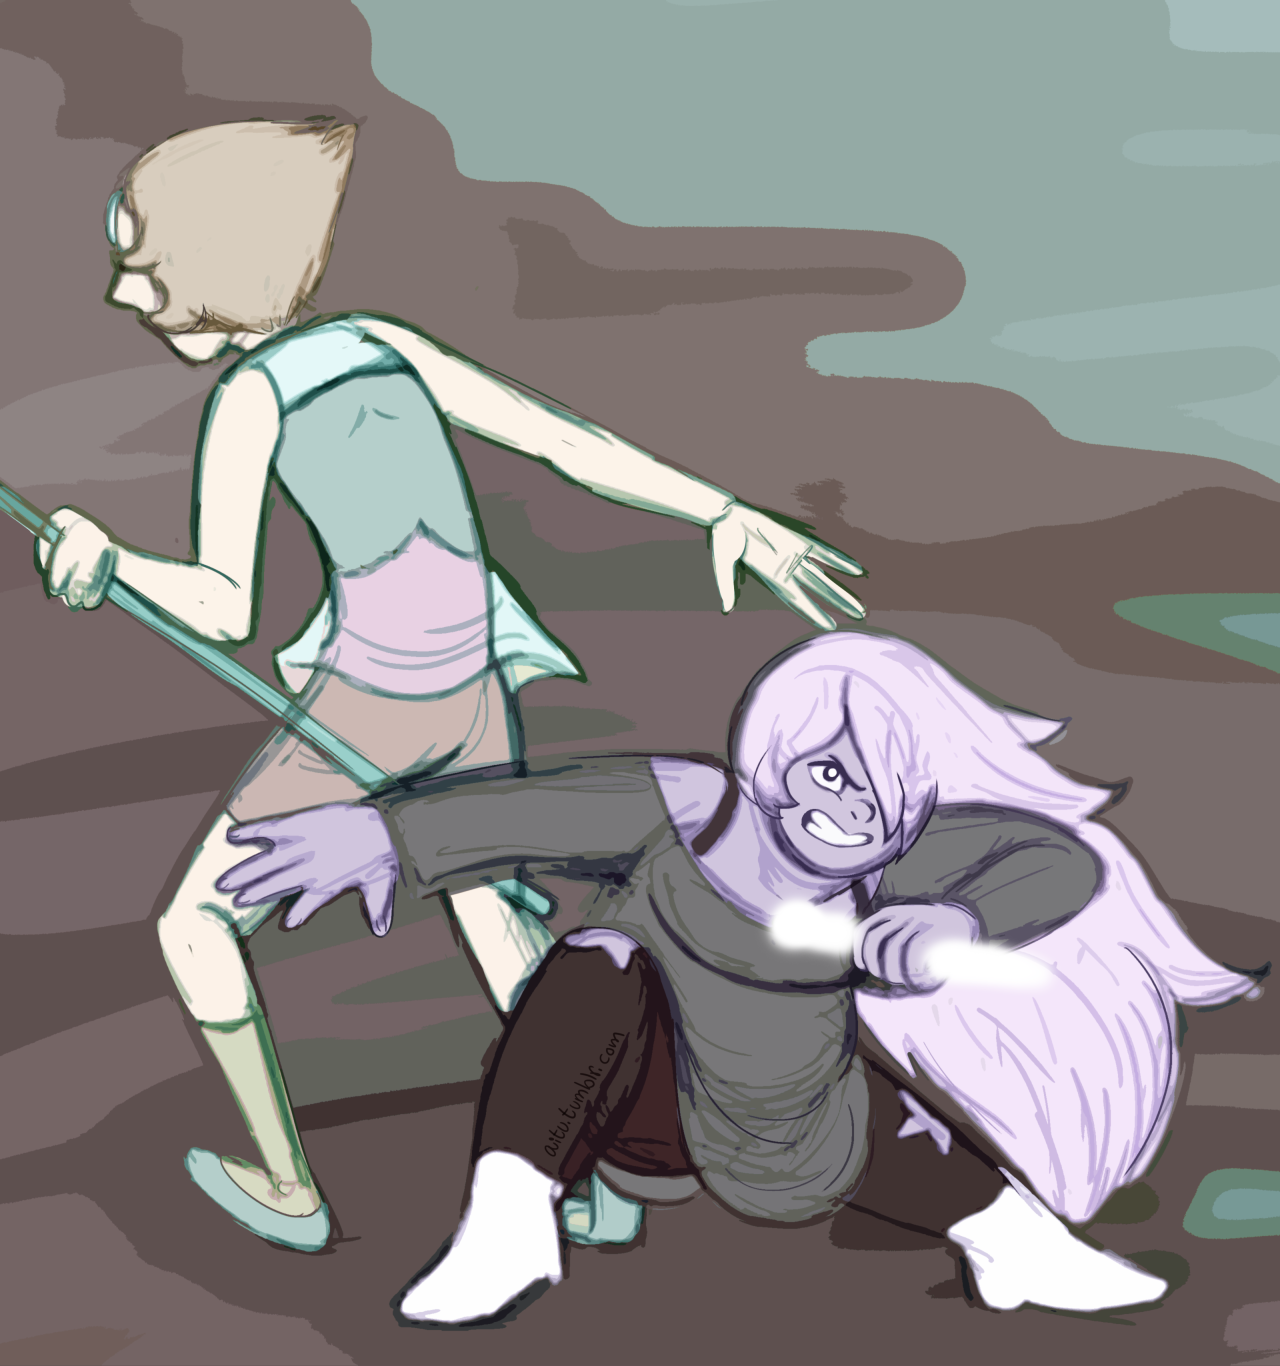 Positively Pearlmethyst Day 3: Protection/Teamwork